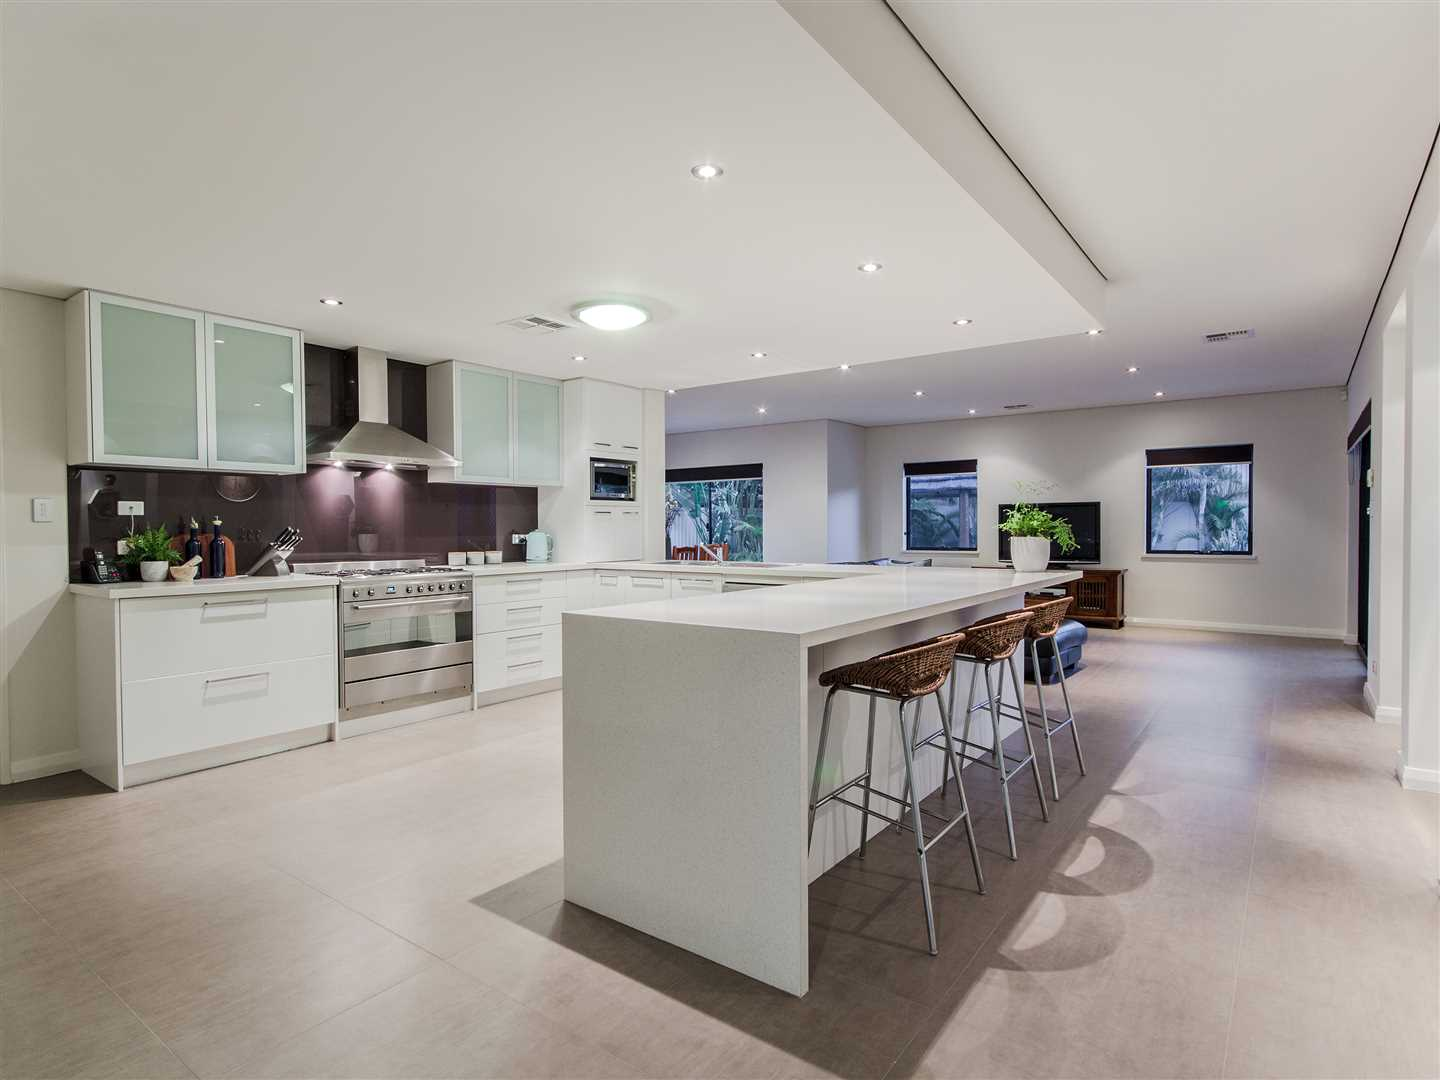 Kitchen and Living